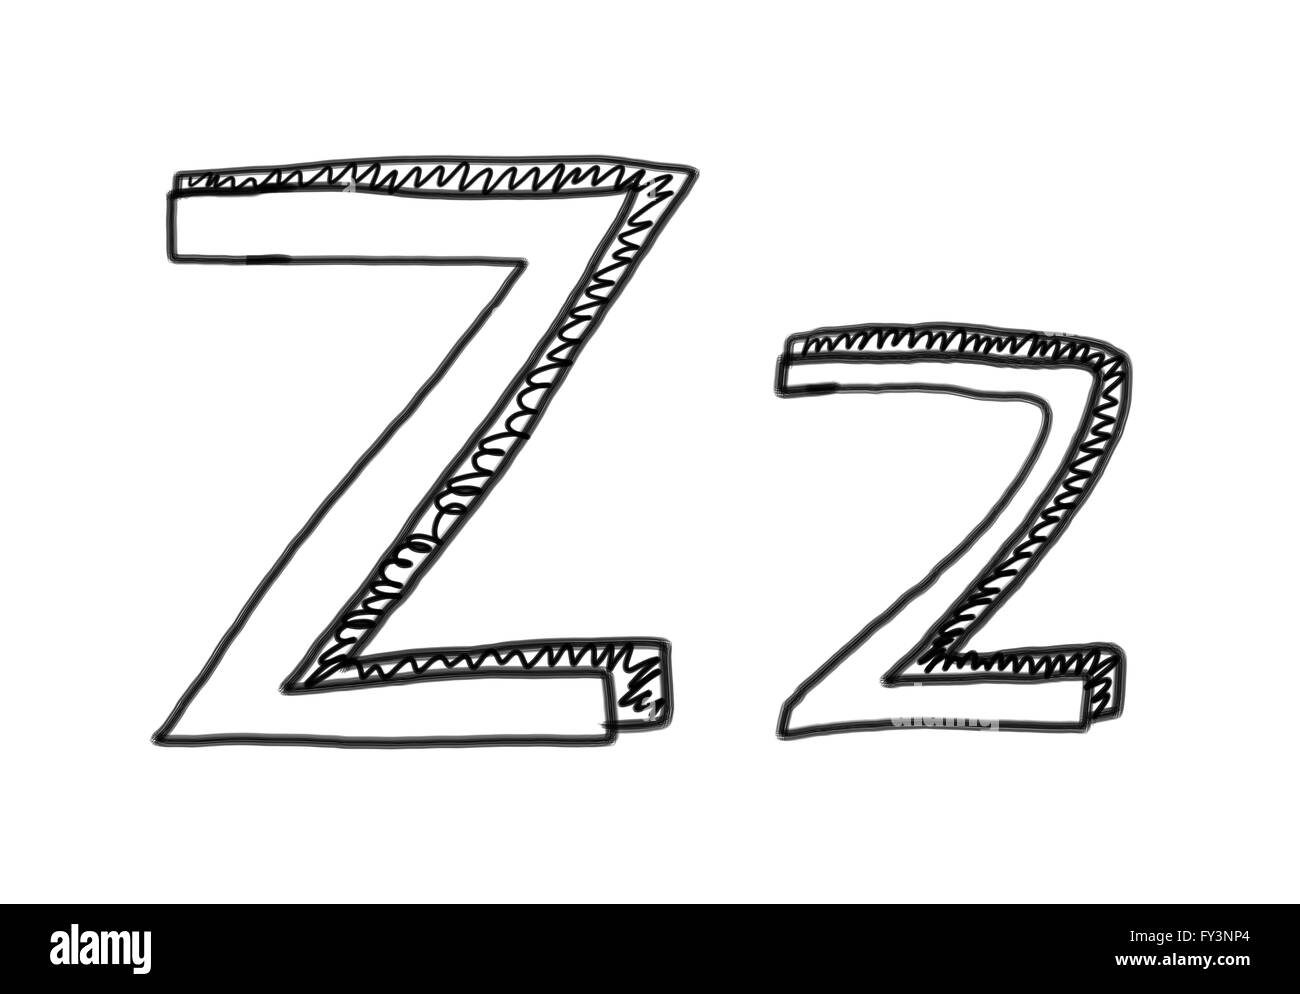 New drawing Character Z of alphabet logo icon in design